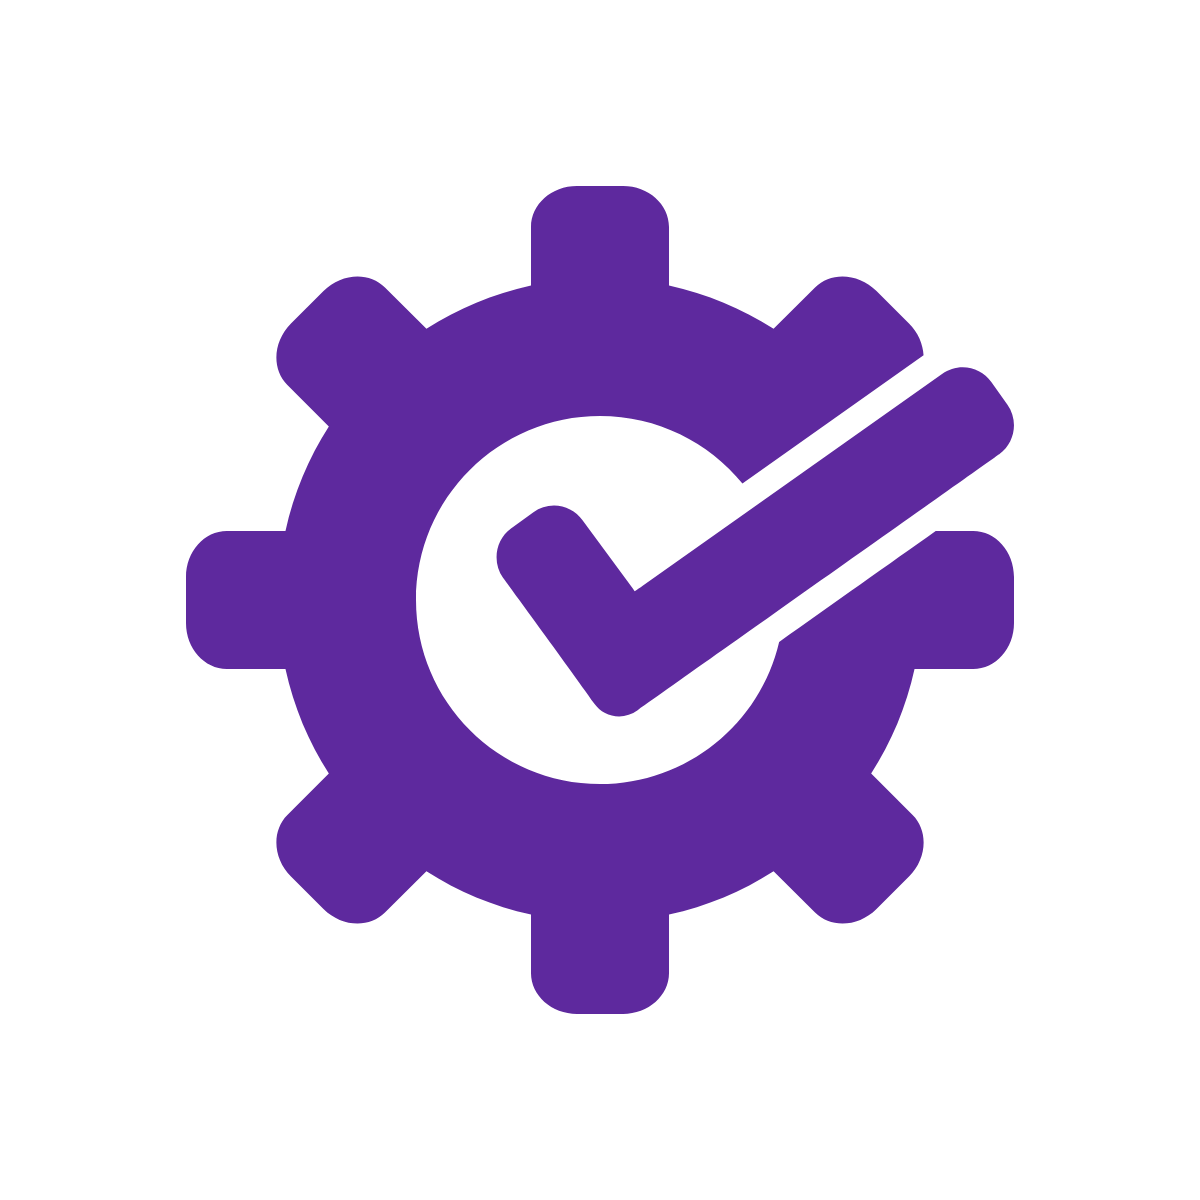 Icon of gear with checkmark